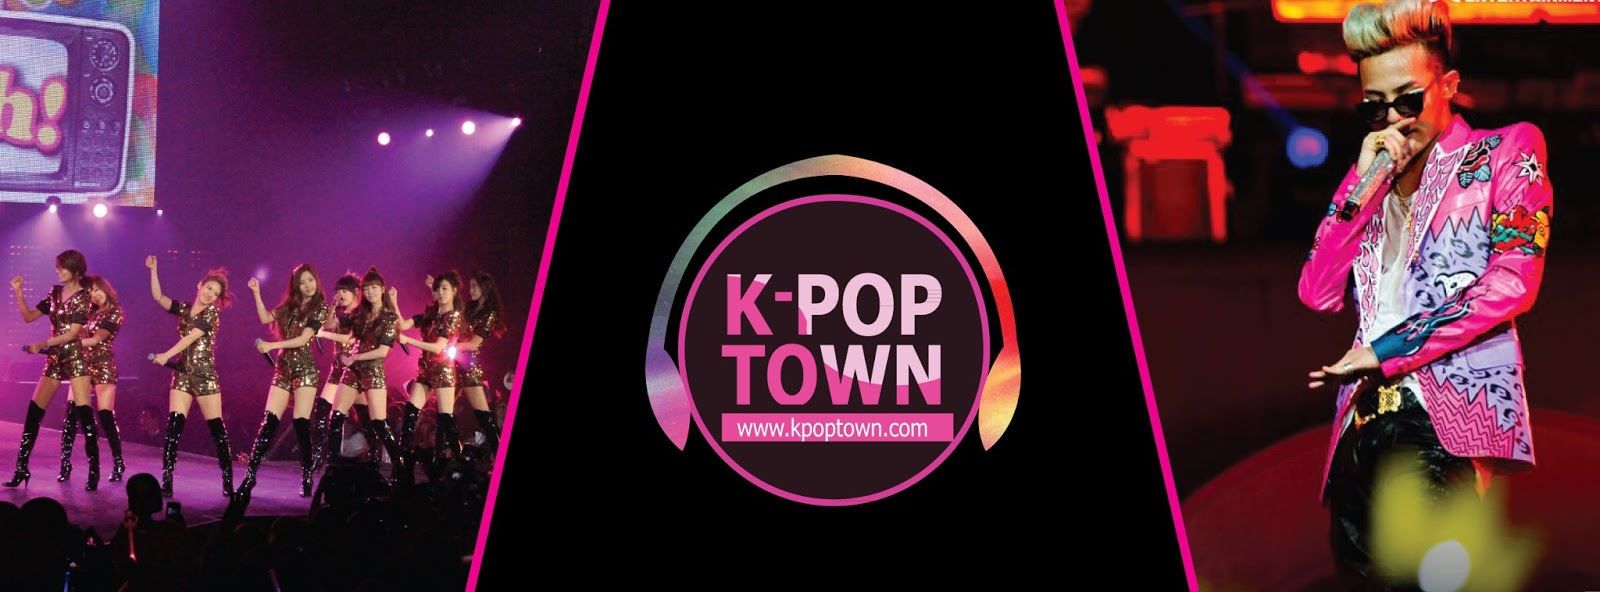 true kpop fans should never miss out on any kpoptown promo code